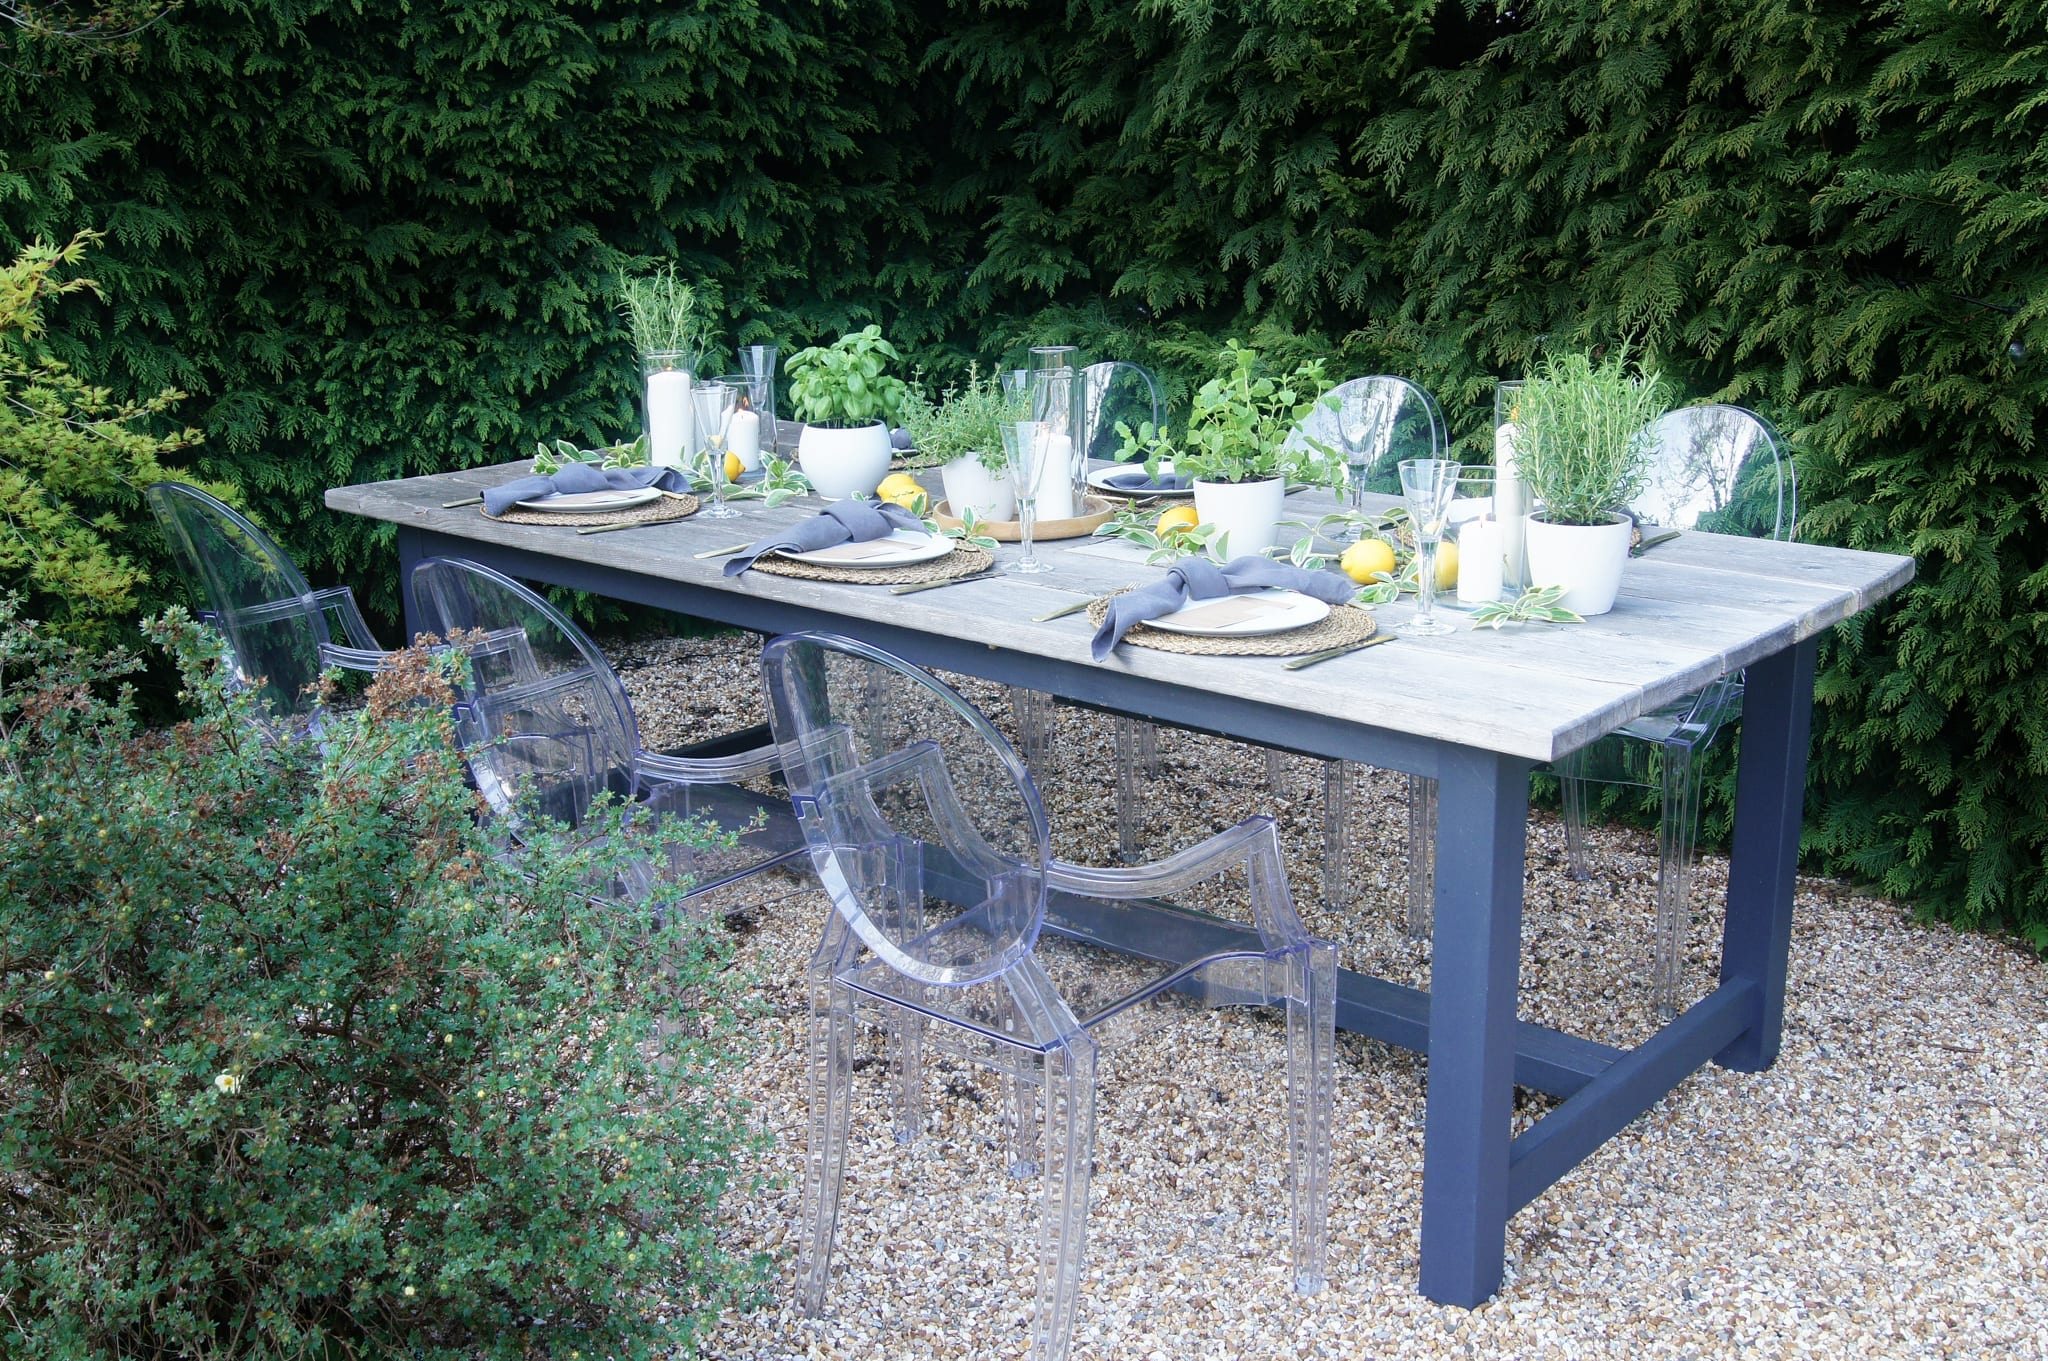 Garden table with ghost chairs